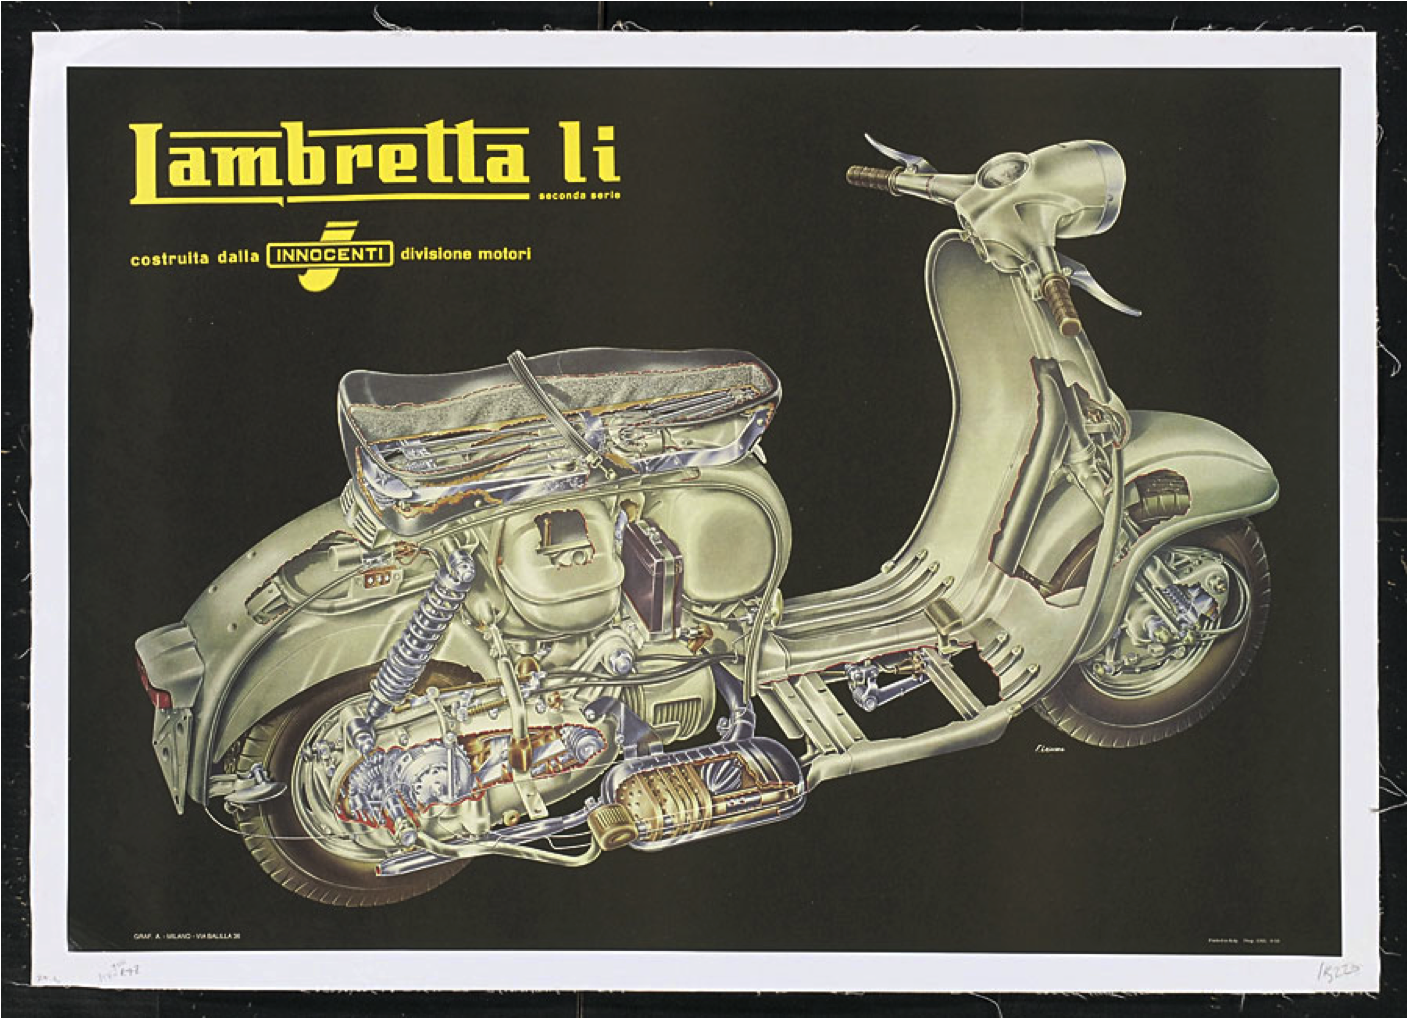 Poster Vintage Lambretta Innocenti Motorcycle Moped Scooter Old Top Quality